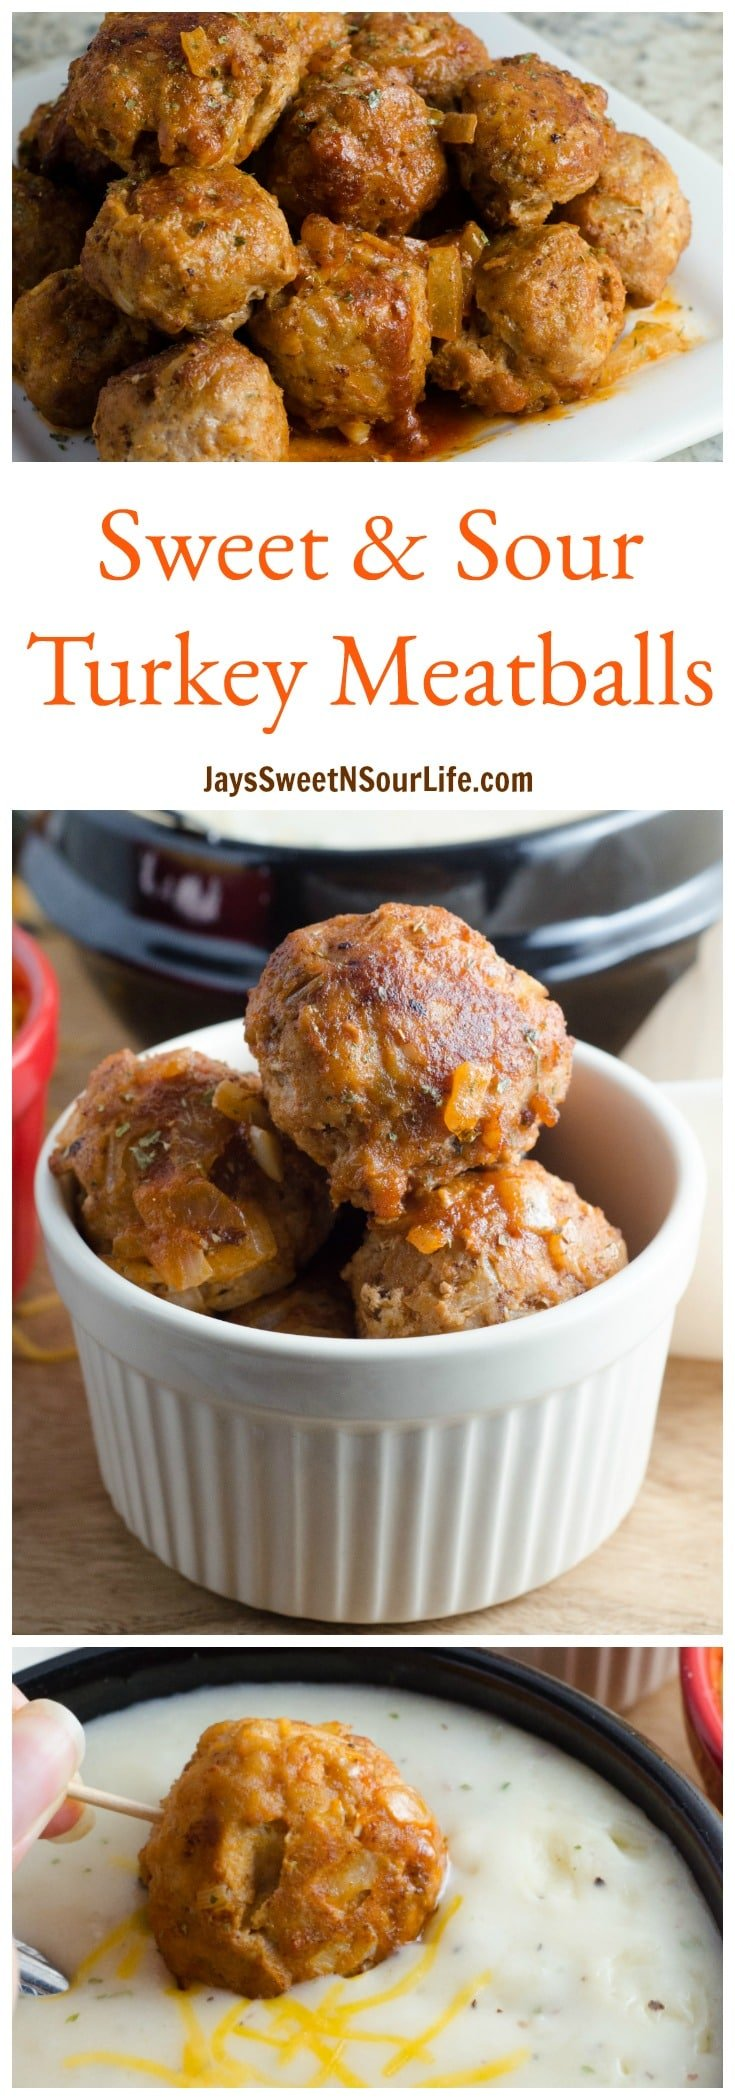 Sweet and Sour Turkey Meatballs